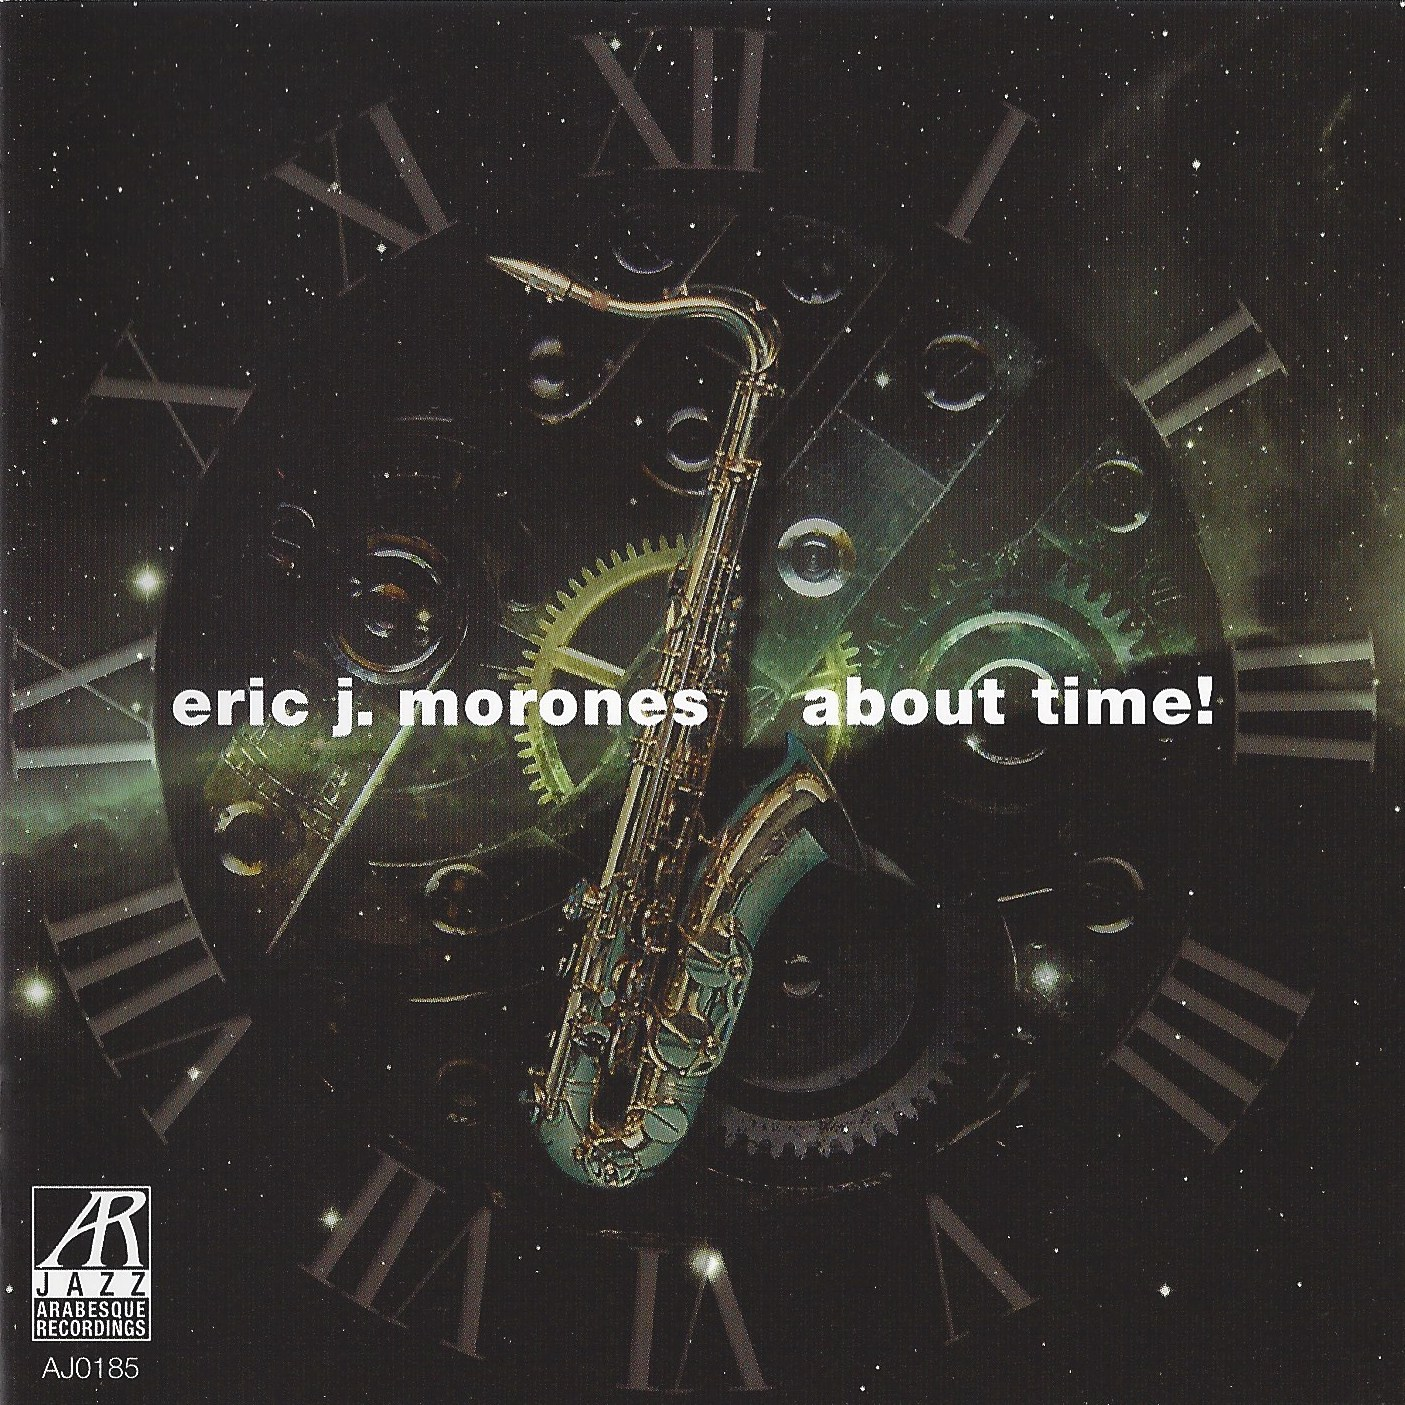 AJ0185  | About Time! |  Eric J. Morones